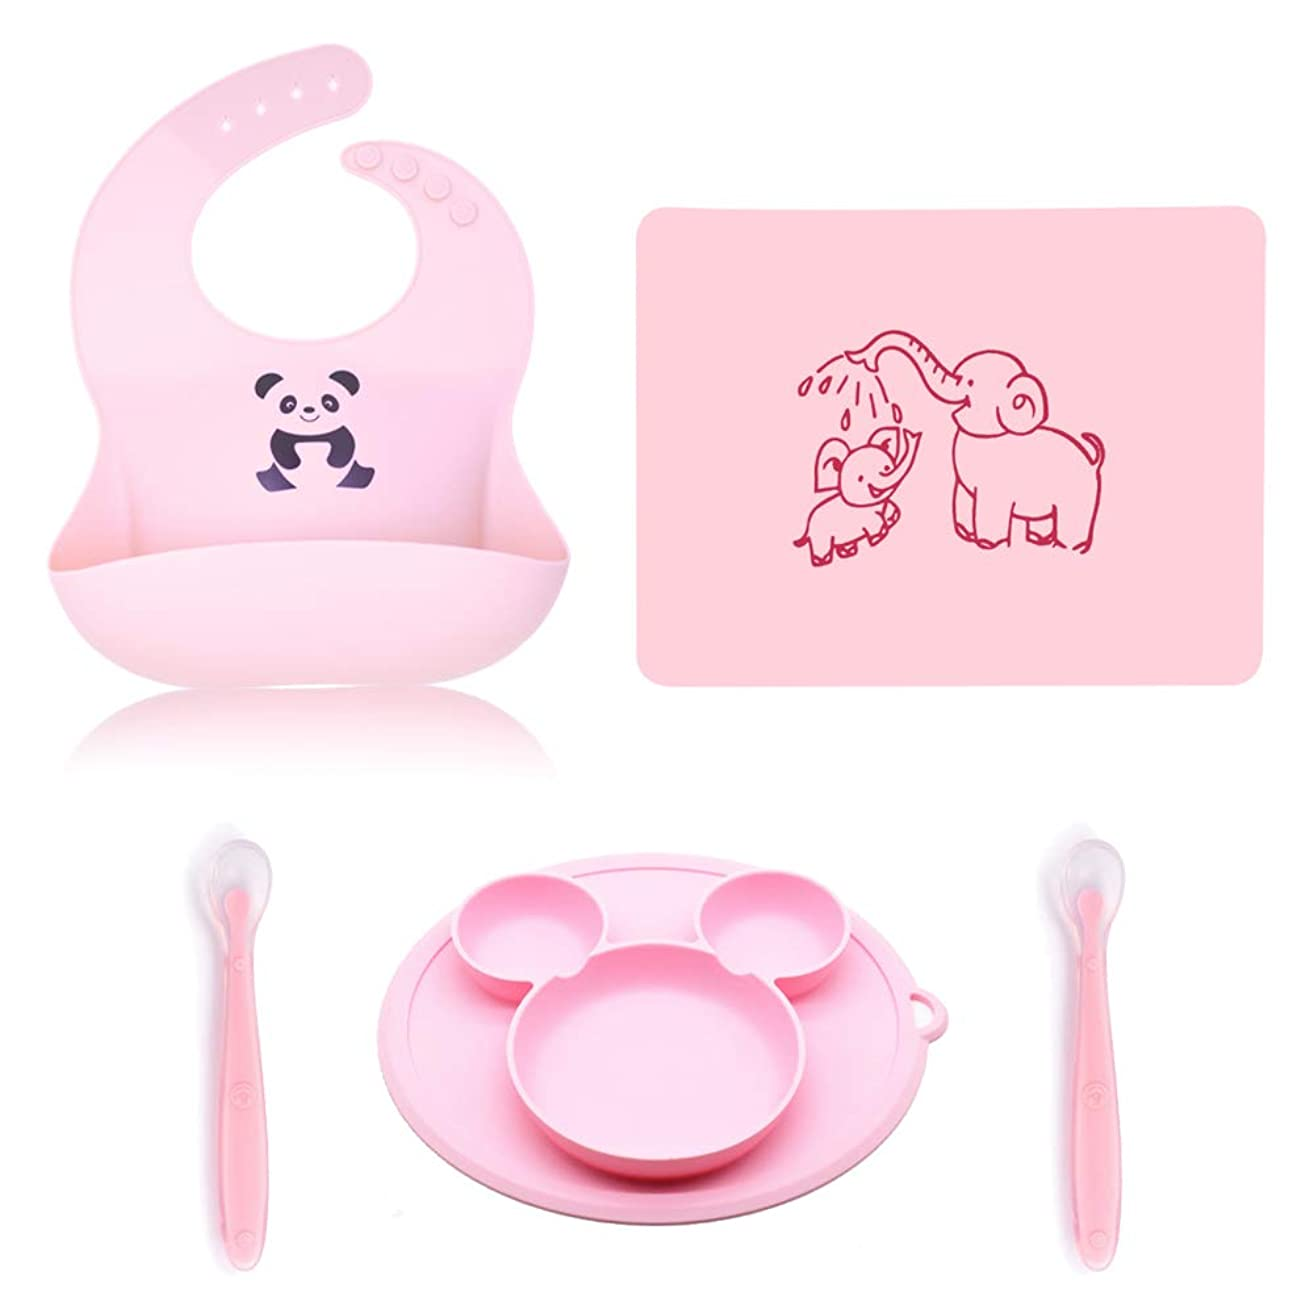 Silicone Baby Bib Baby Feeding Set Bowls Spoons with Food Pocket,Waterproof Bibs for Babies & Toddlers Girl and Boy,Silicone Bib/Plate/Mat/Spoons Set,Easily Wipe Clean BPA Free Great Baby Gift…